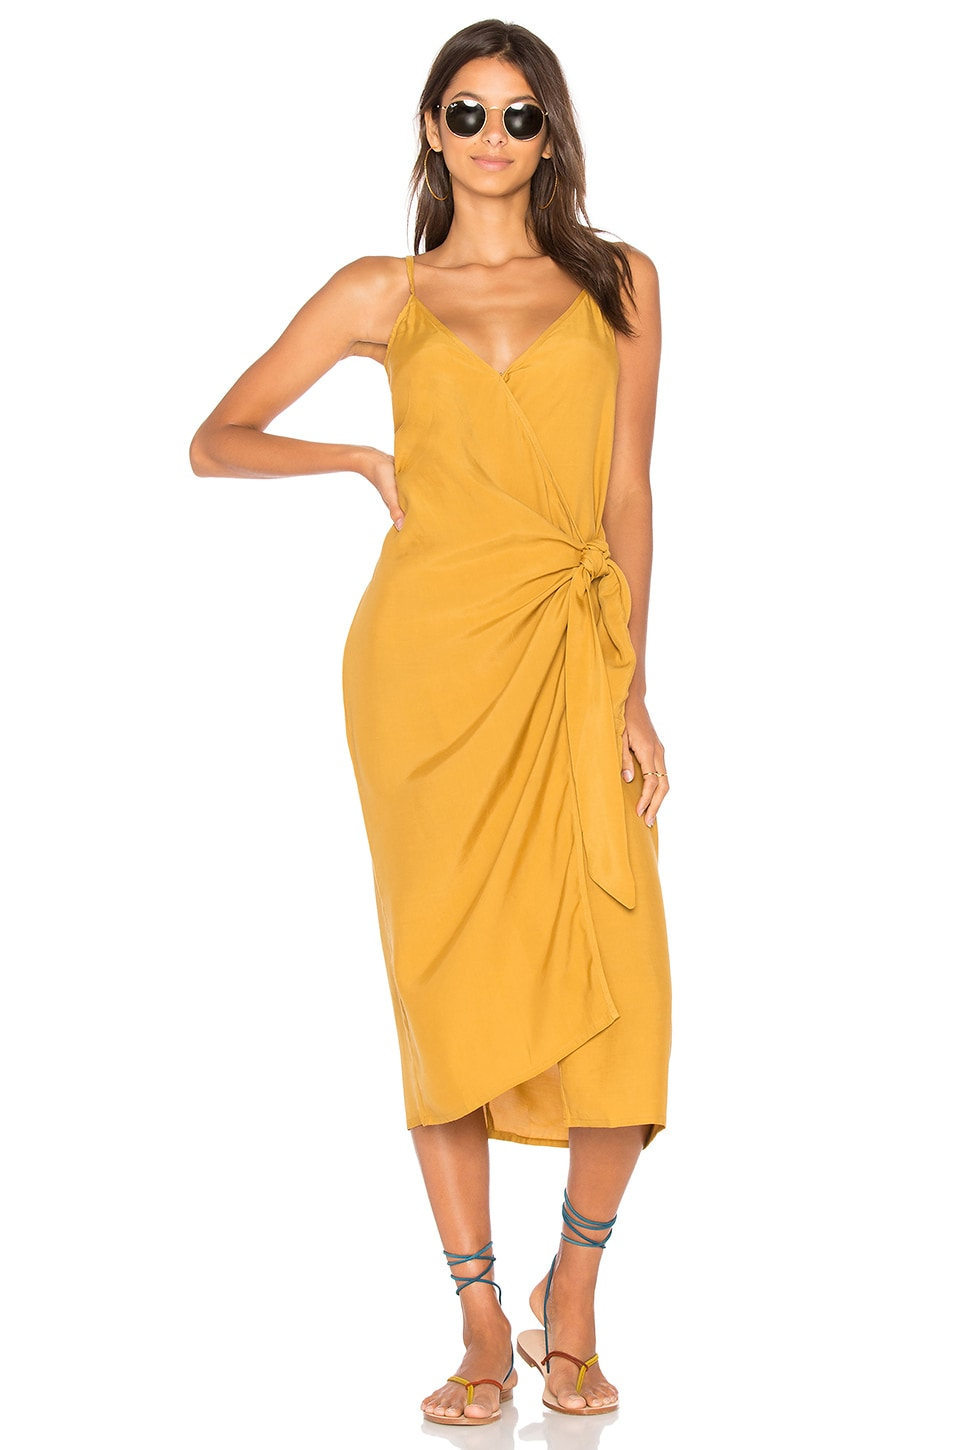 FAITHFULL THE BRAND Juel Midi Dress in Plain Mustard